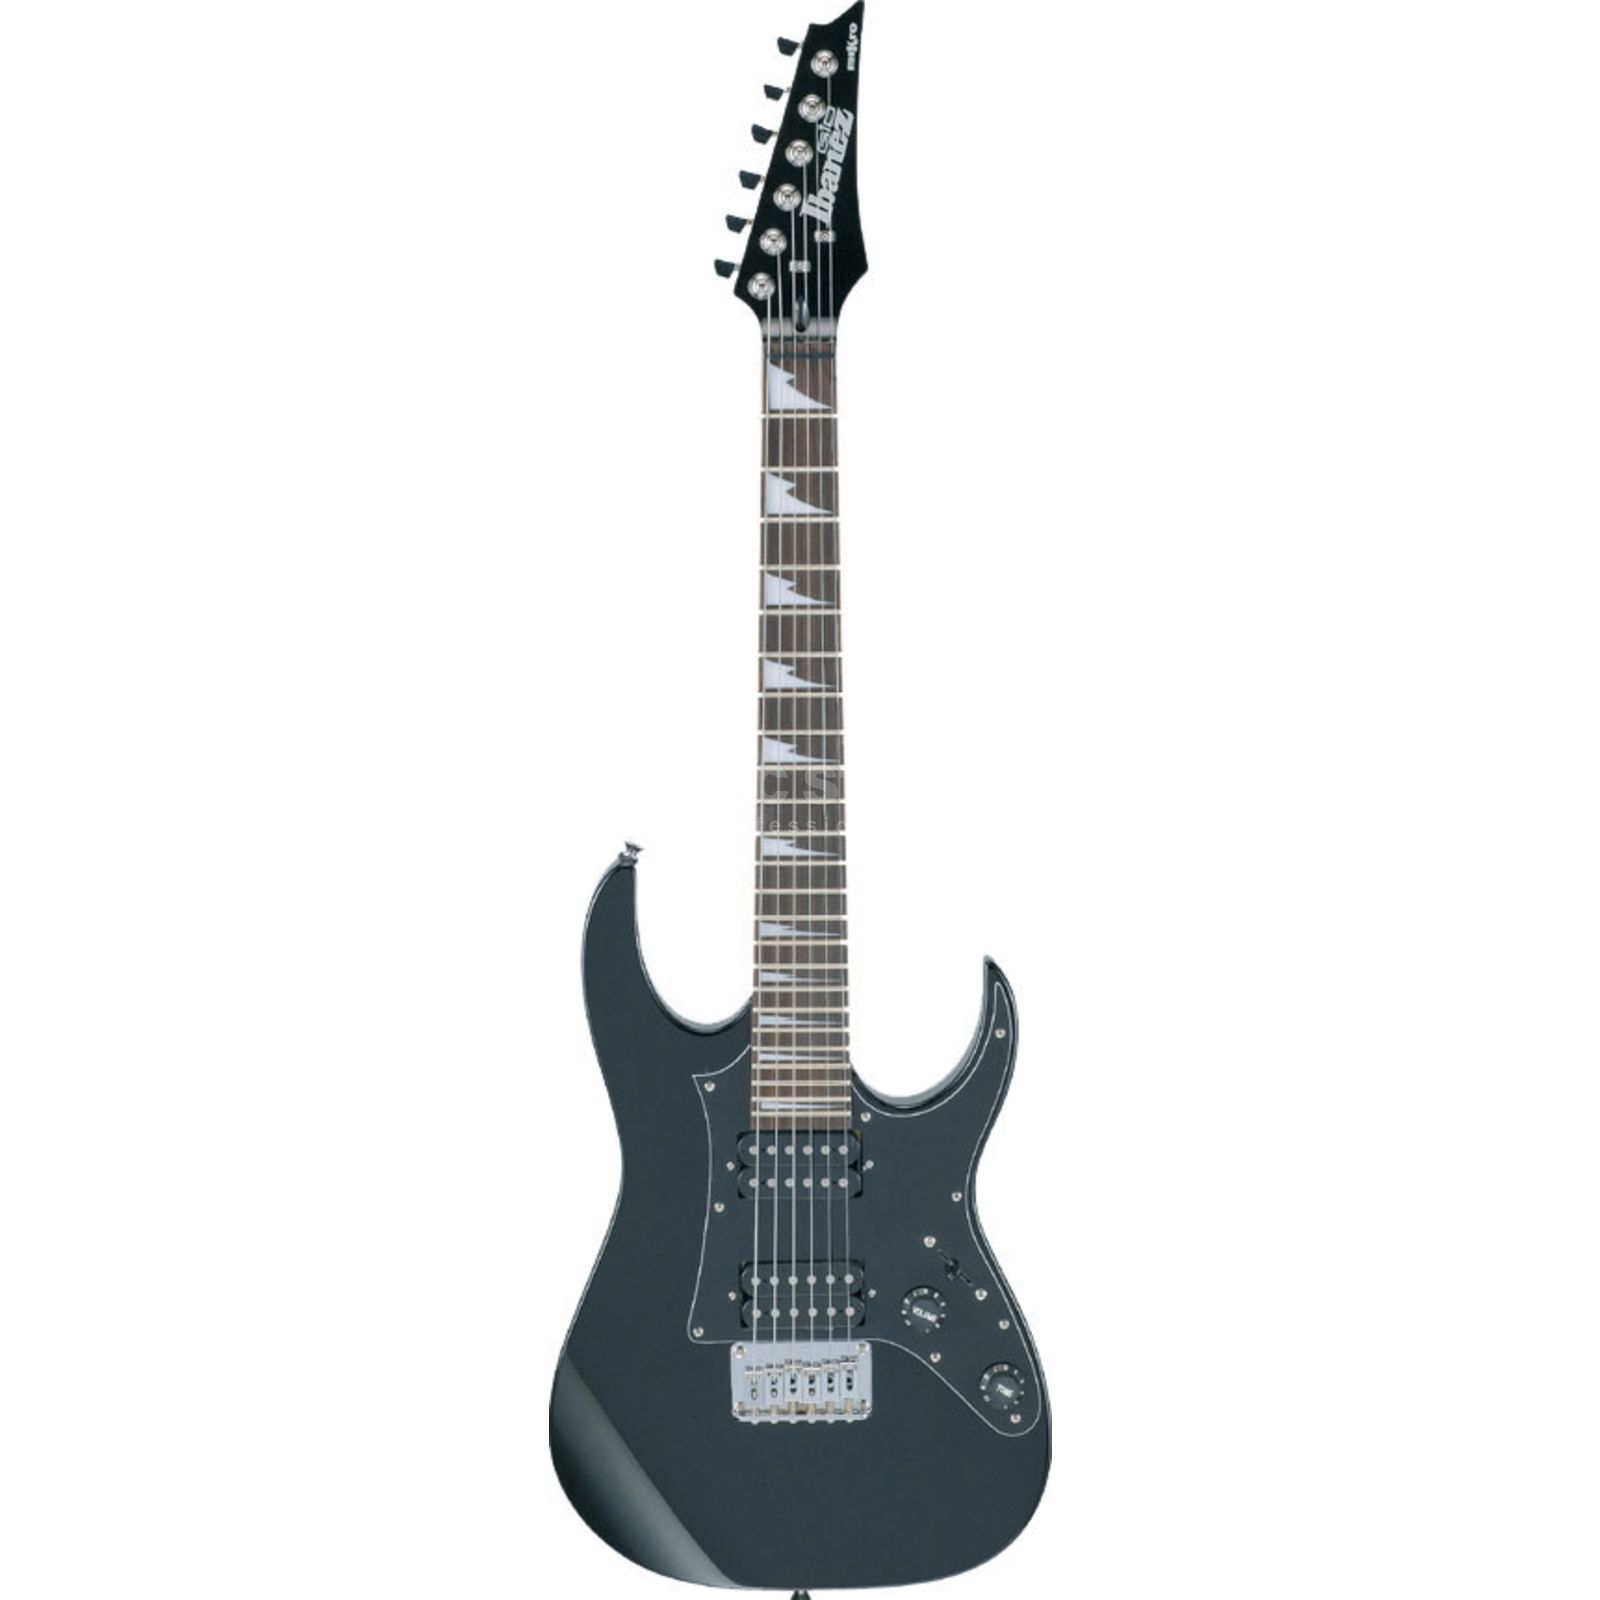 Ibanez GRGM21 Micro Electric Guitar,  Black Night   Produktbillede